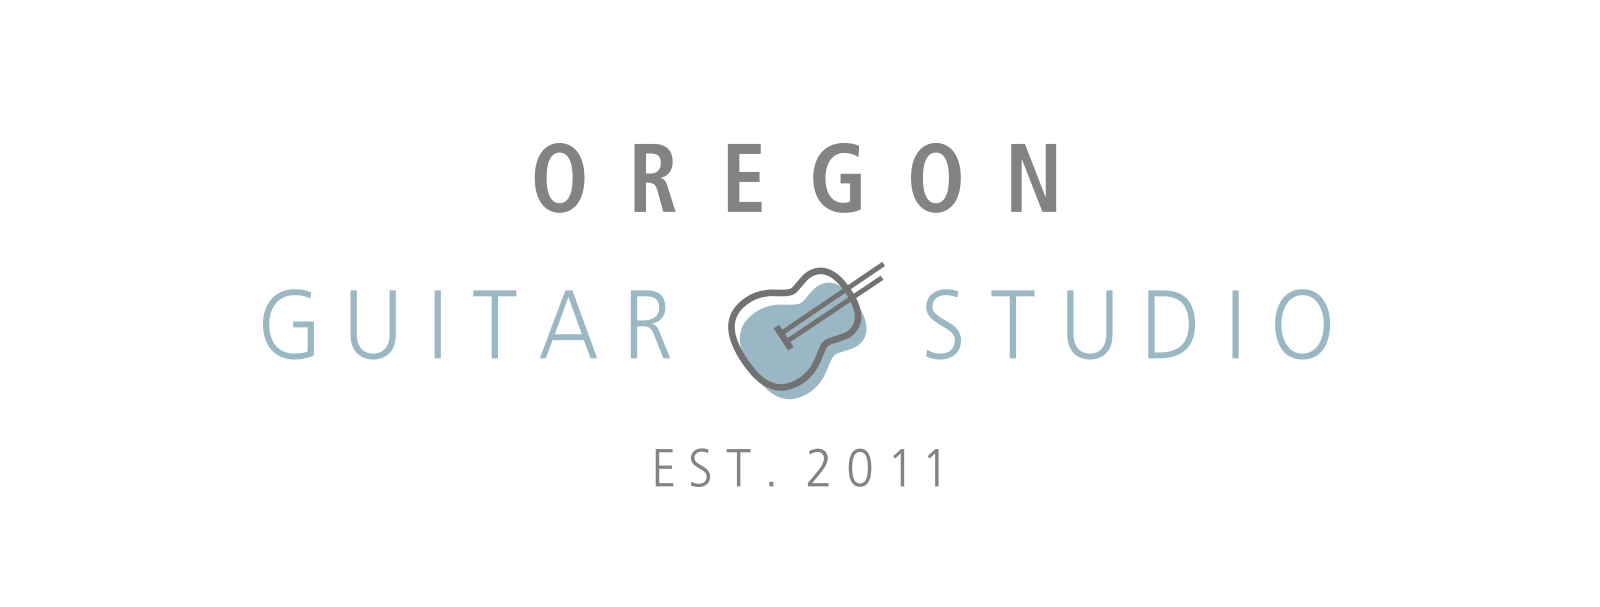 oregon-guitar-studio-logo Graphicsbyte Creative Media